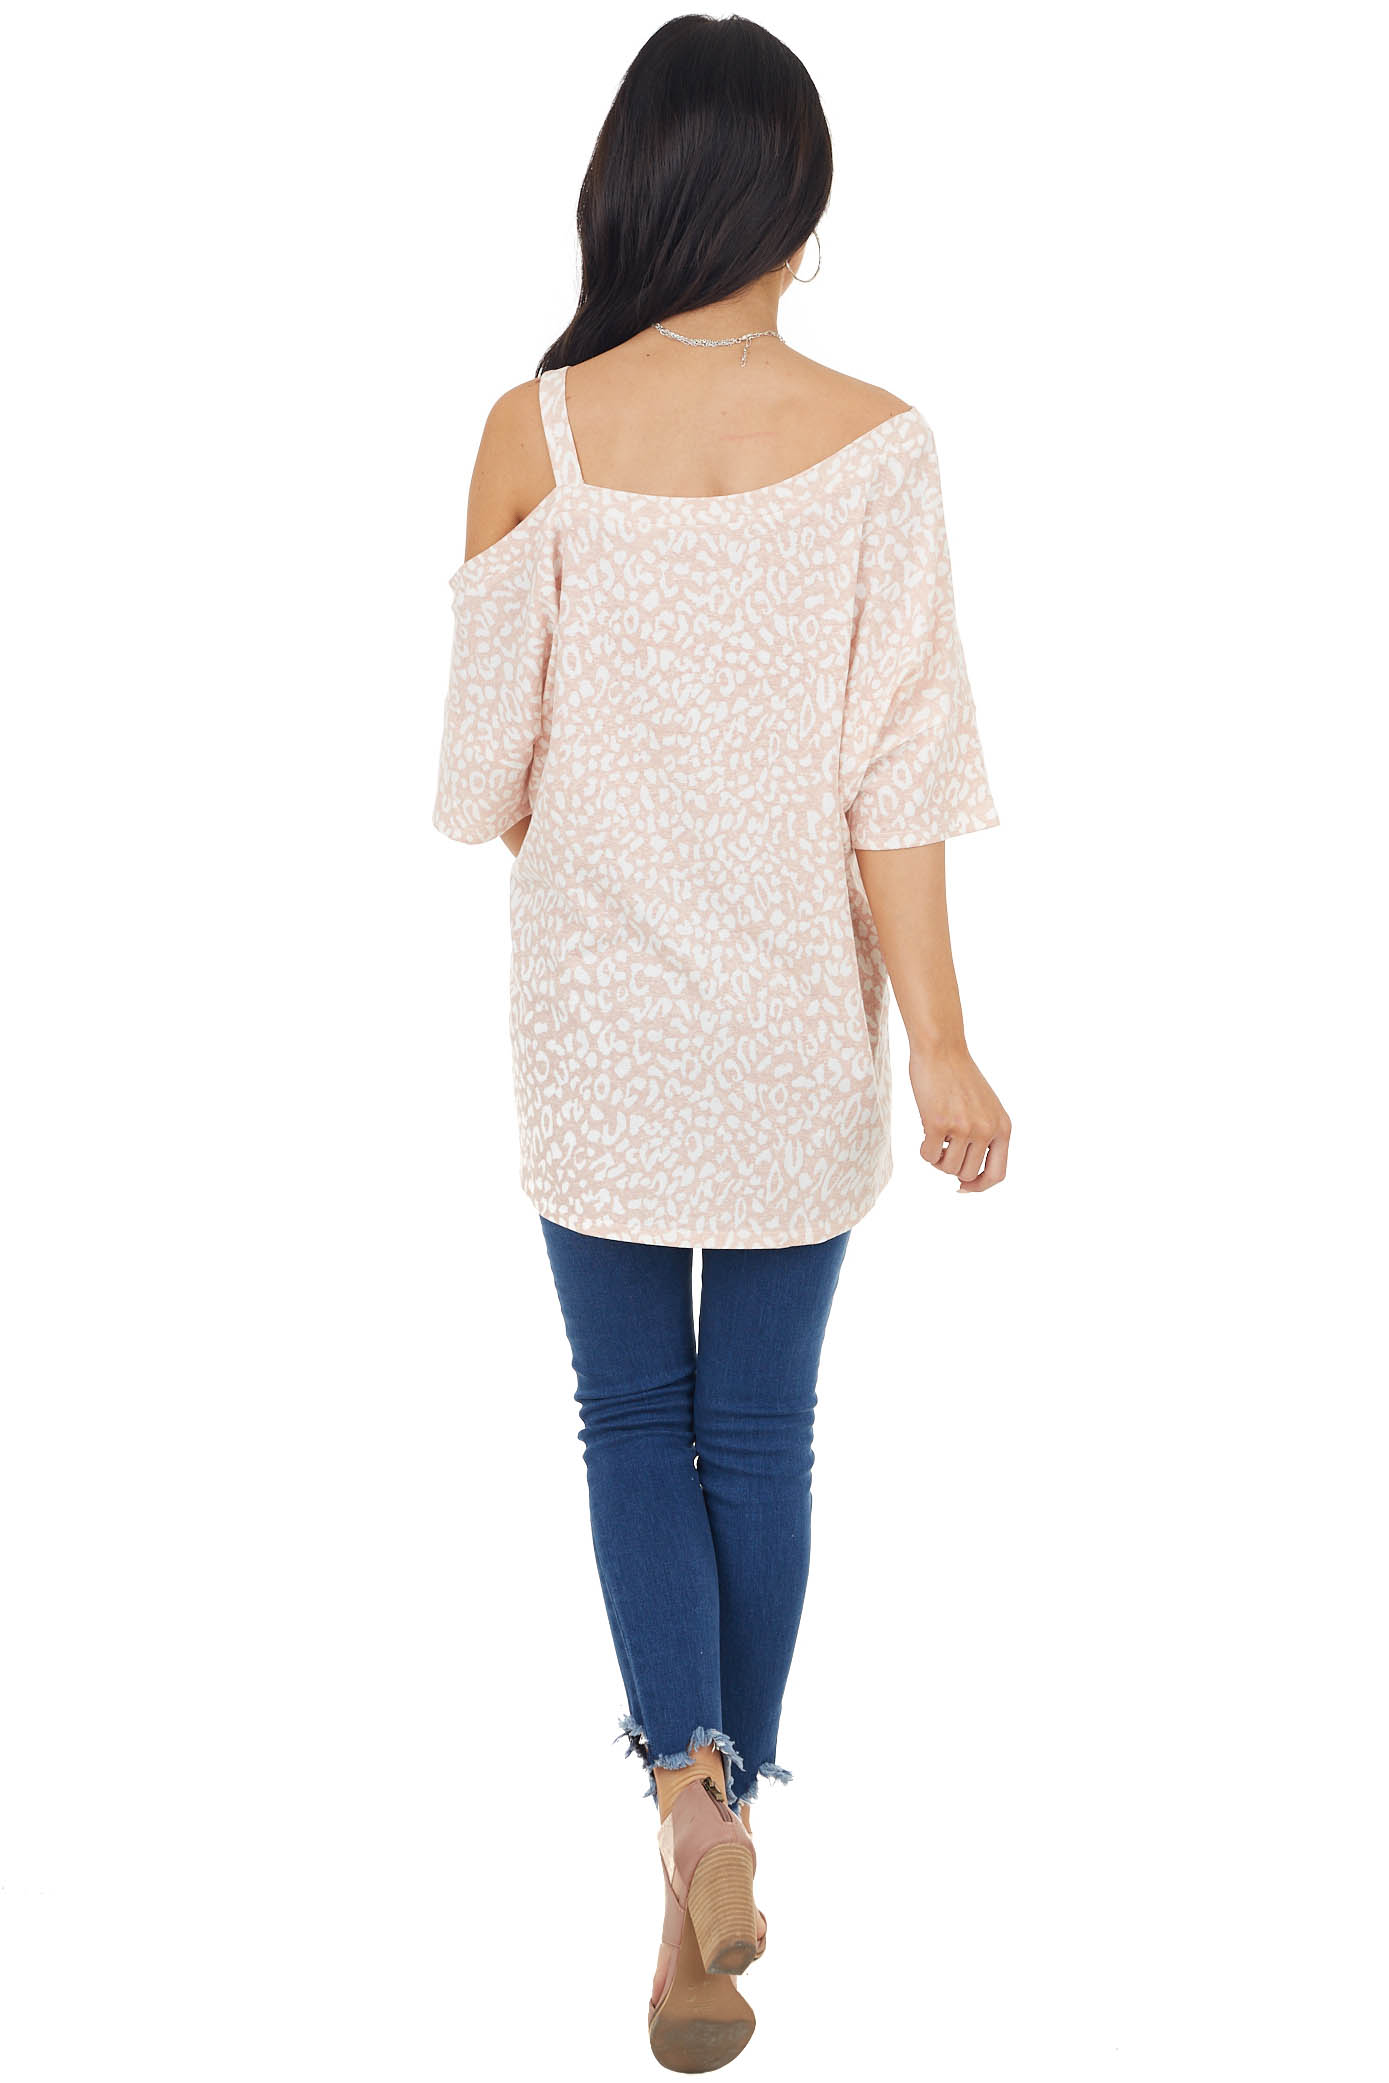 Blush Leopard Print Short Sleeve Top with One Cold Shoulder